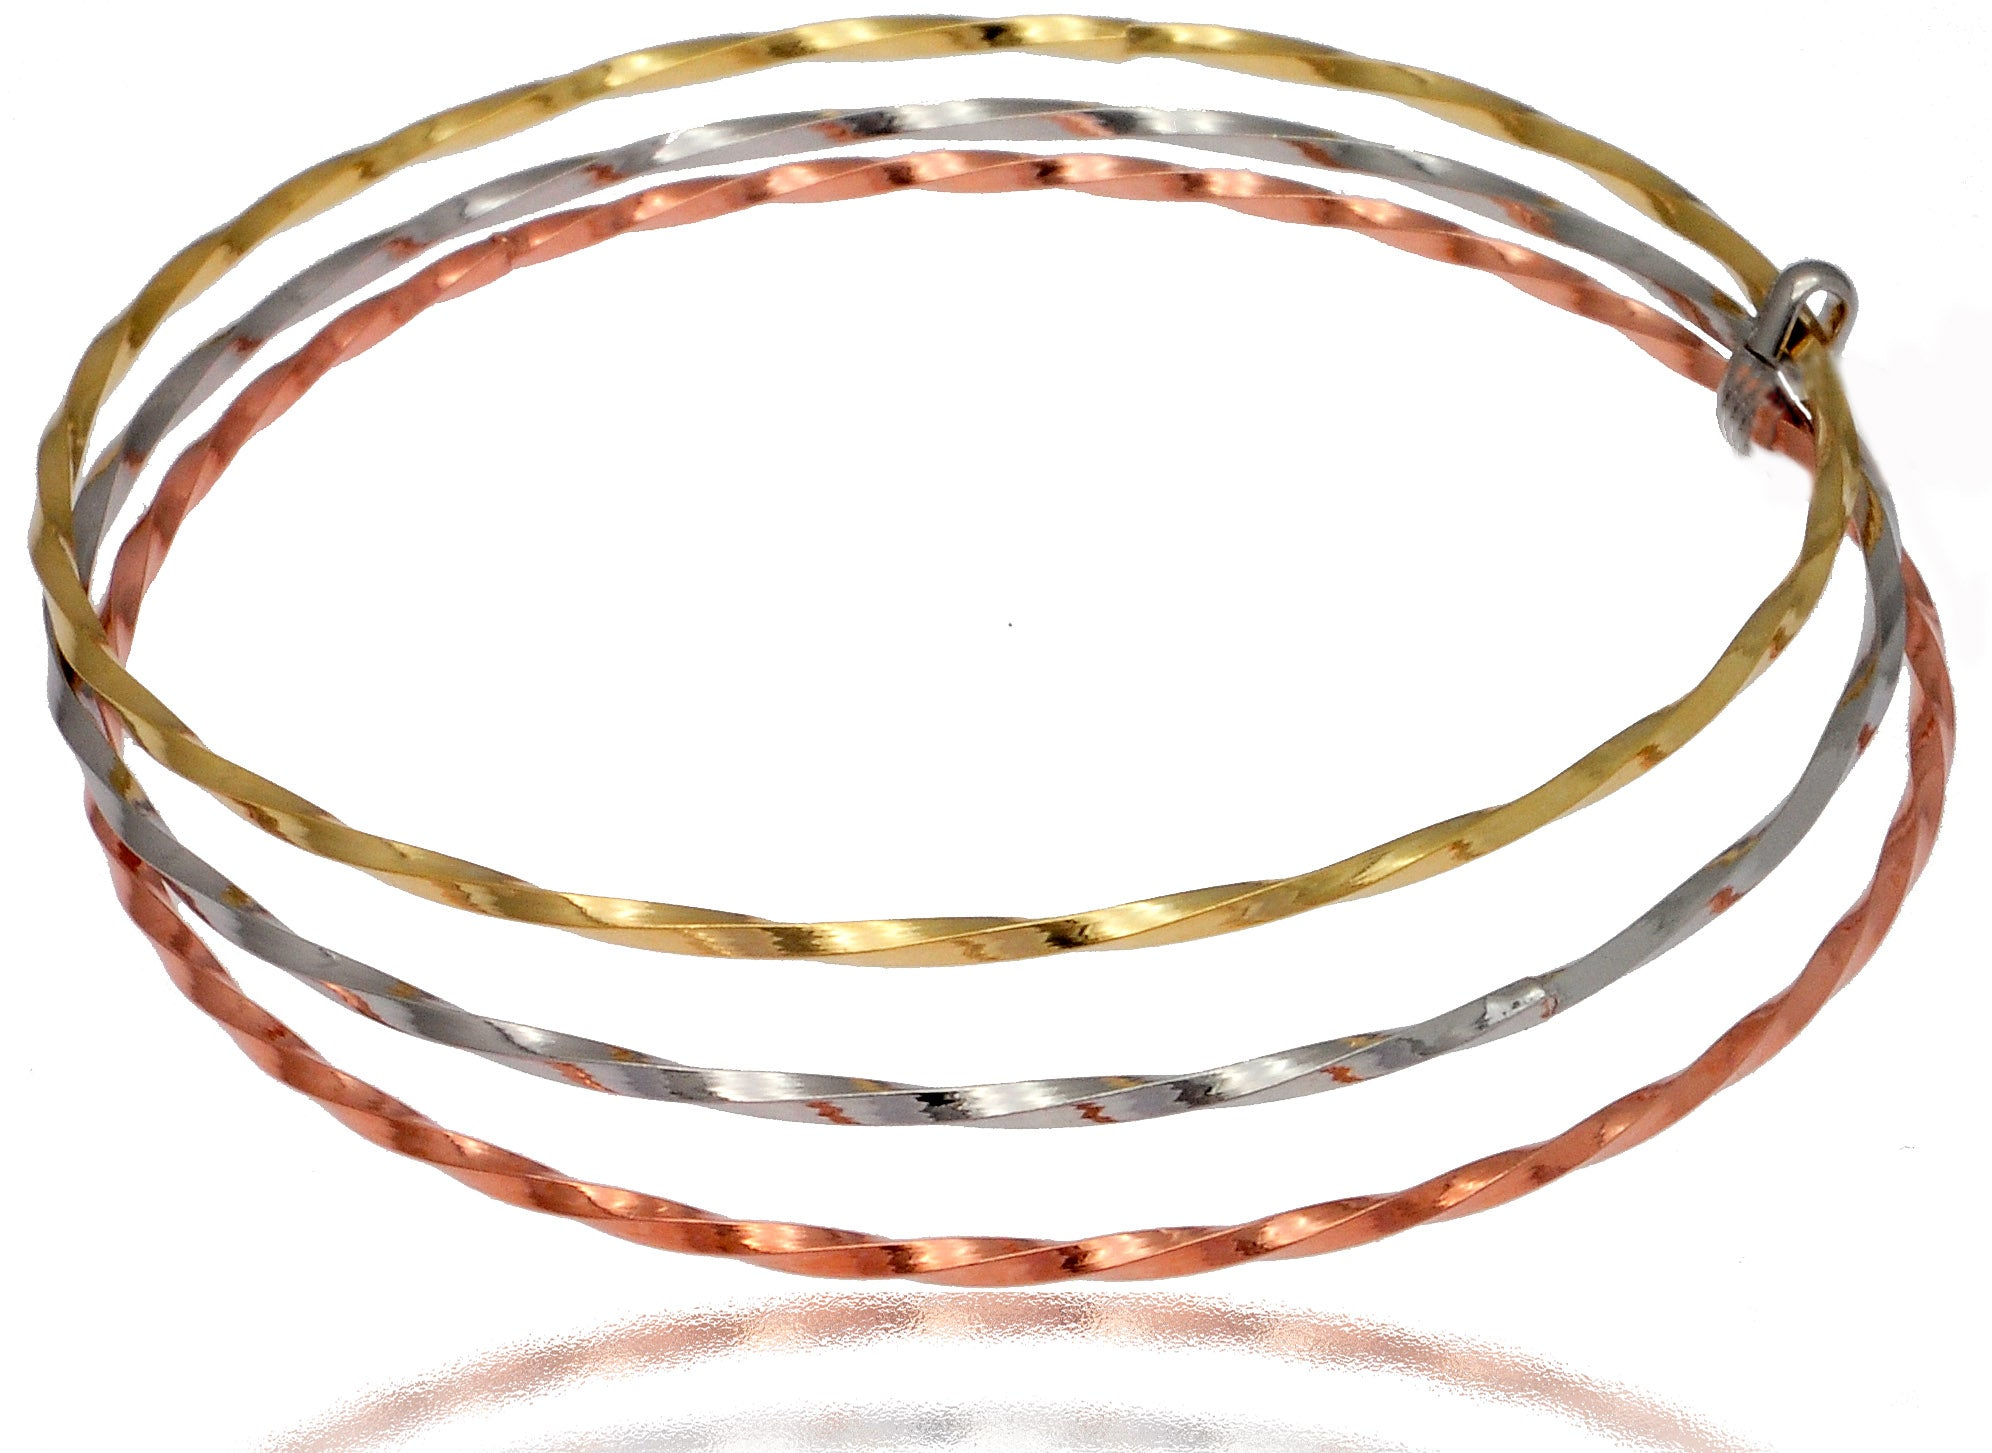 Bangle Bracelet 14k yellow gold, sterling silver, 14k rose gold over sterling